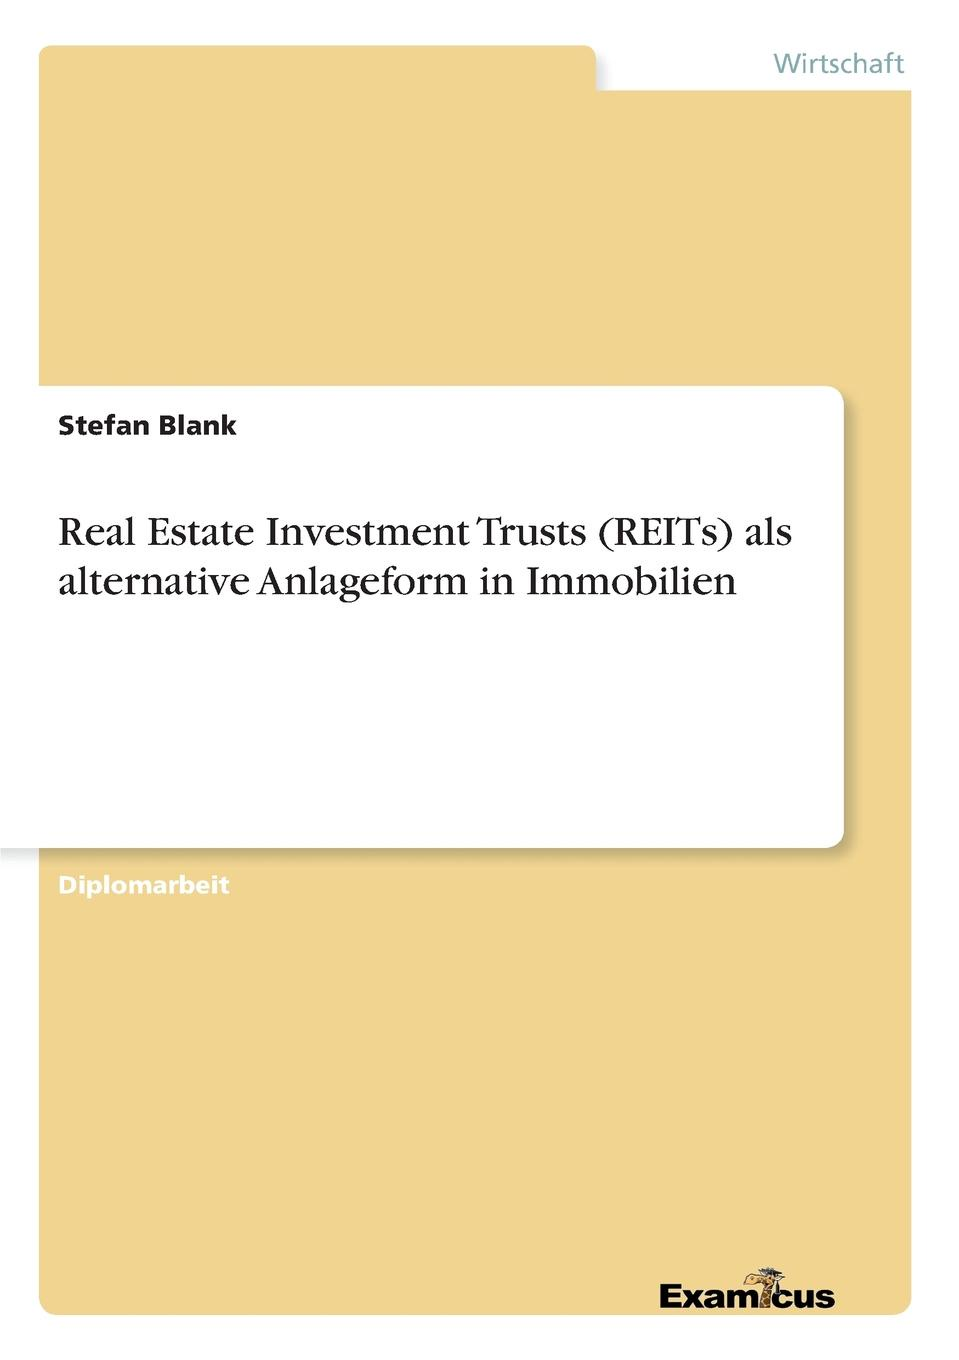 Stefan Blank Real Estate Investment Trusts (REITs) als alternative Anlageform in Immobilien david parker global real estate investment trusts people process and management